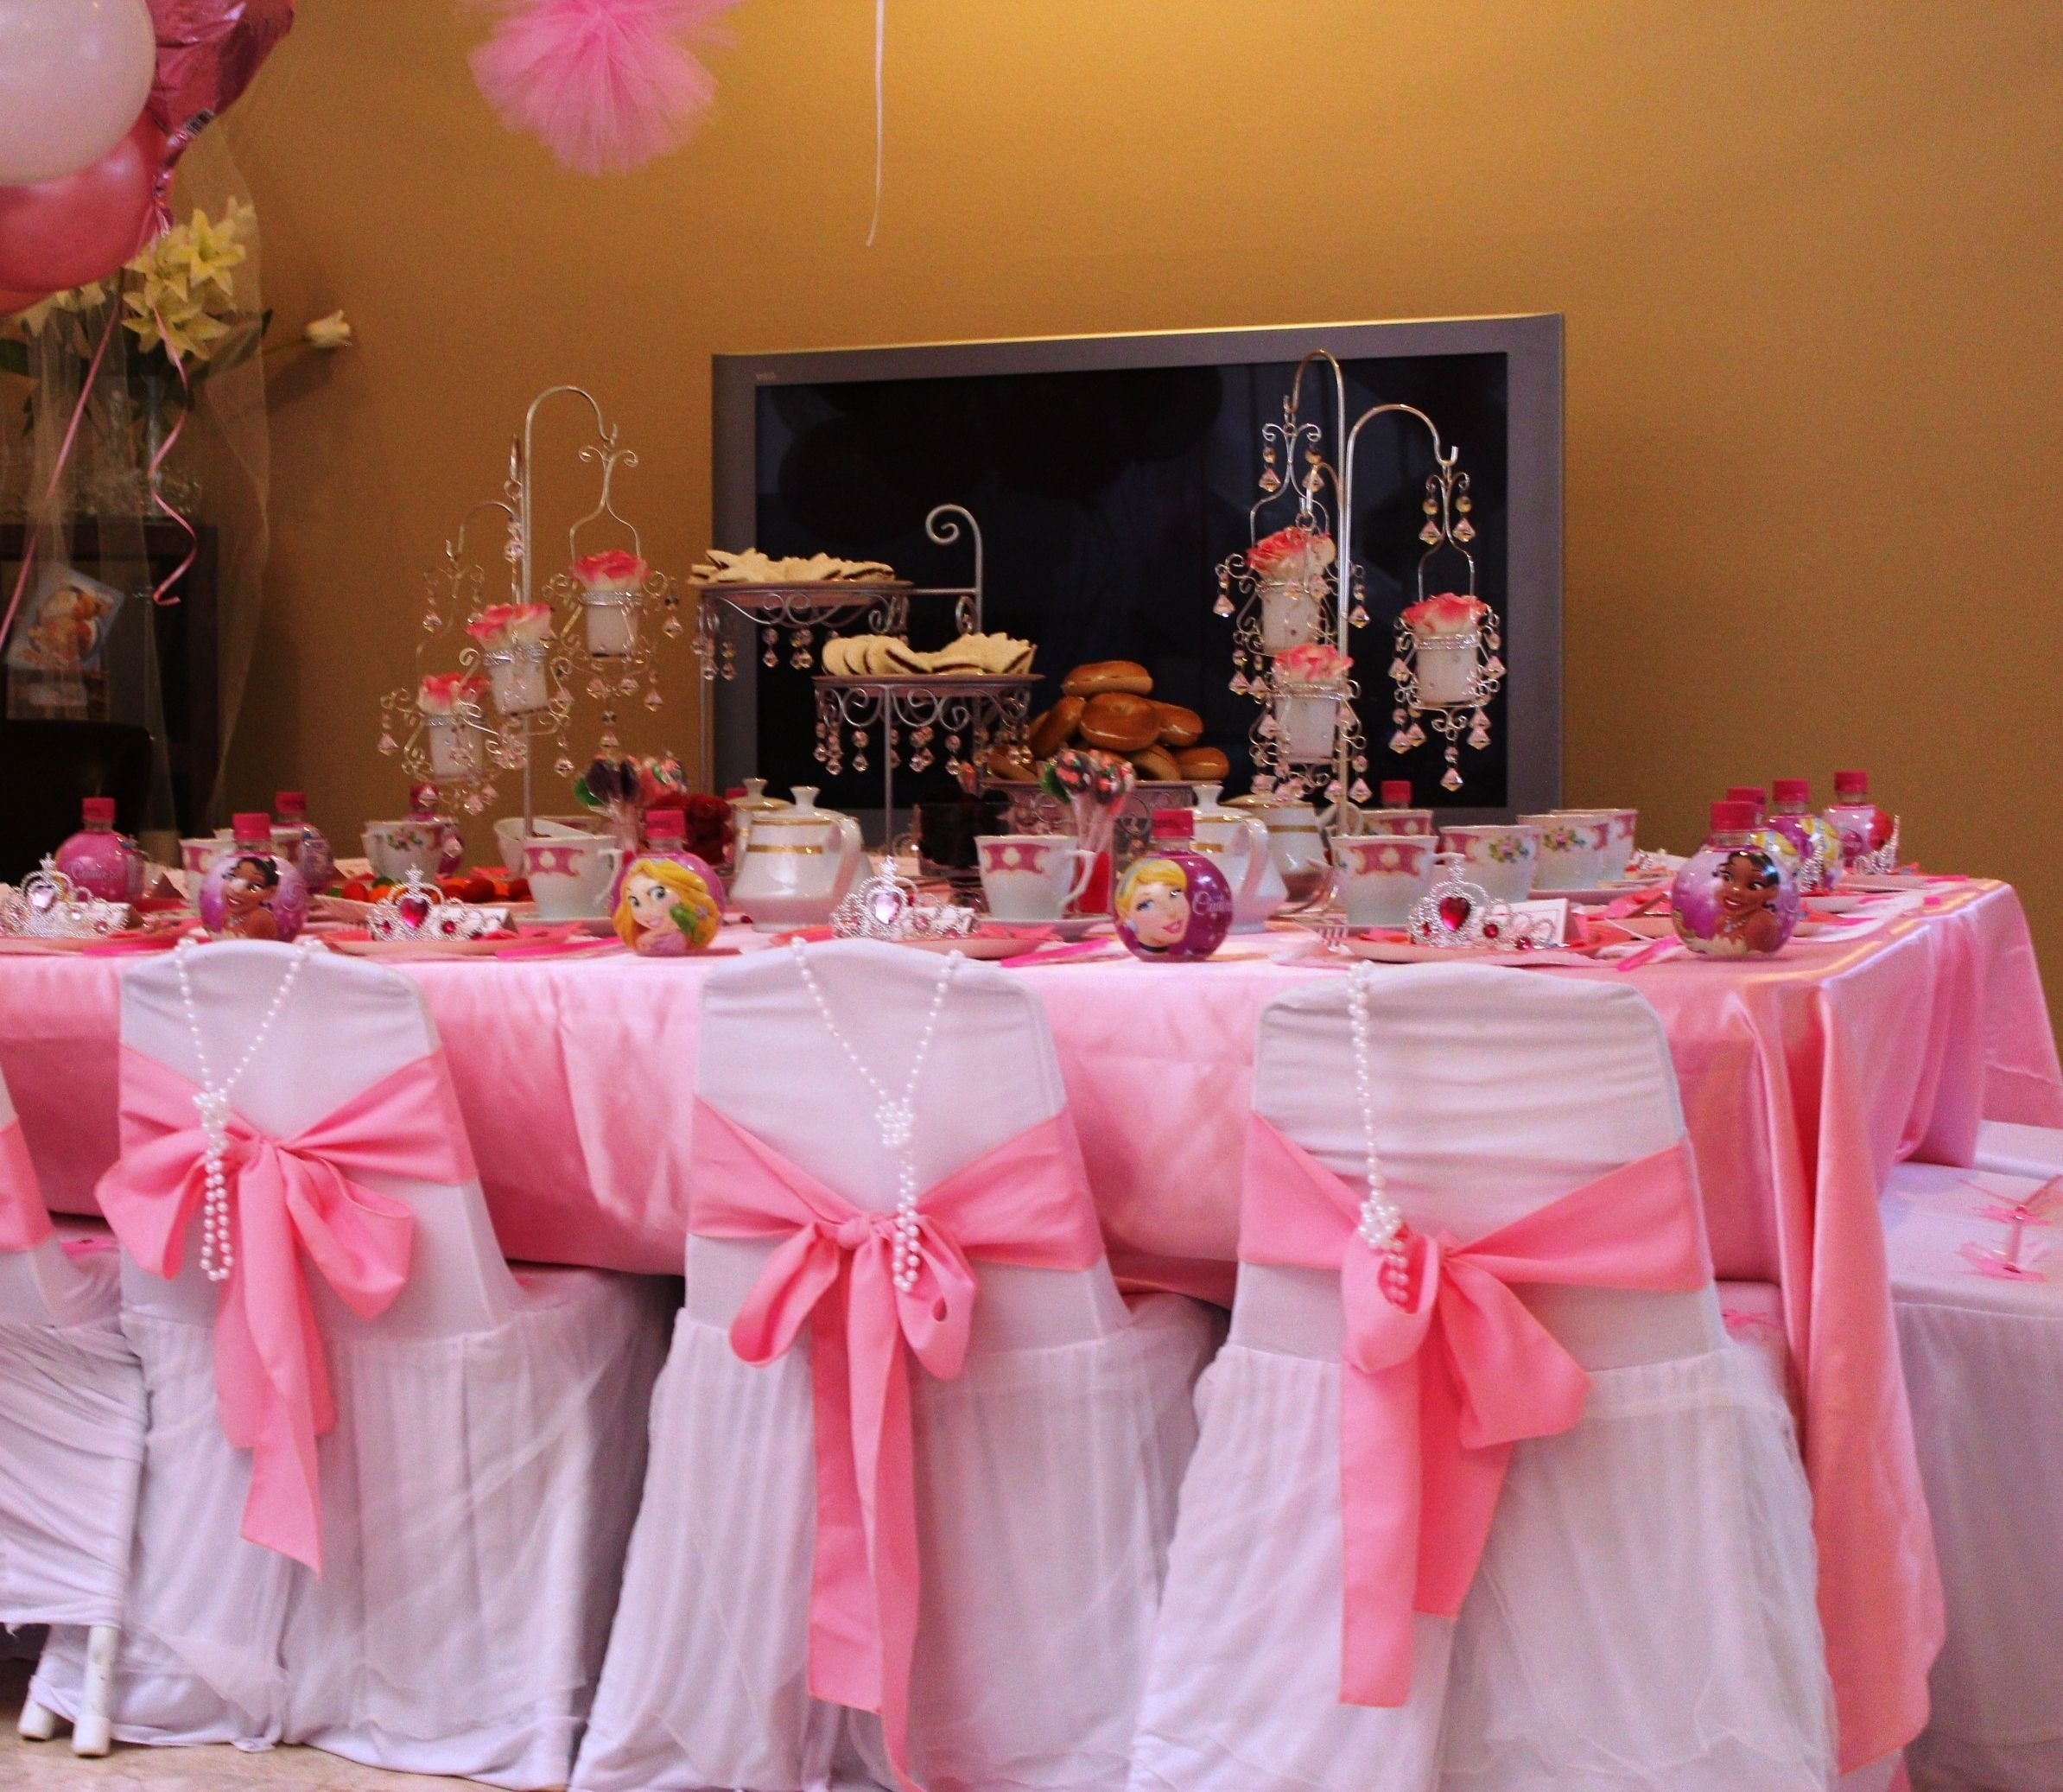 10 Stylish Princess Tea Party Birthday Ideas princess tea party ideas kid sized tables and chairs with princess 1 2020